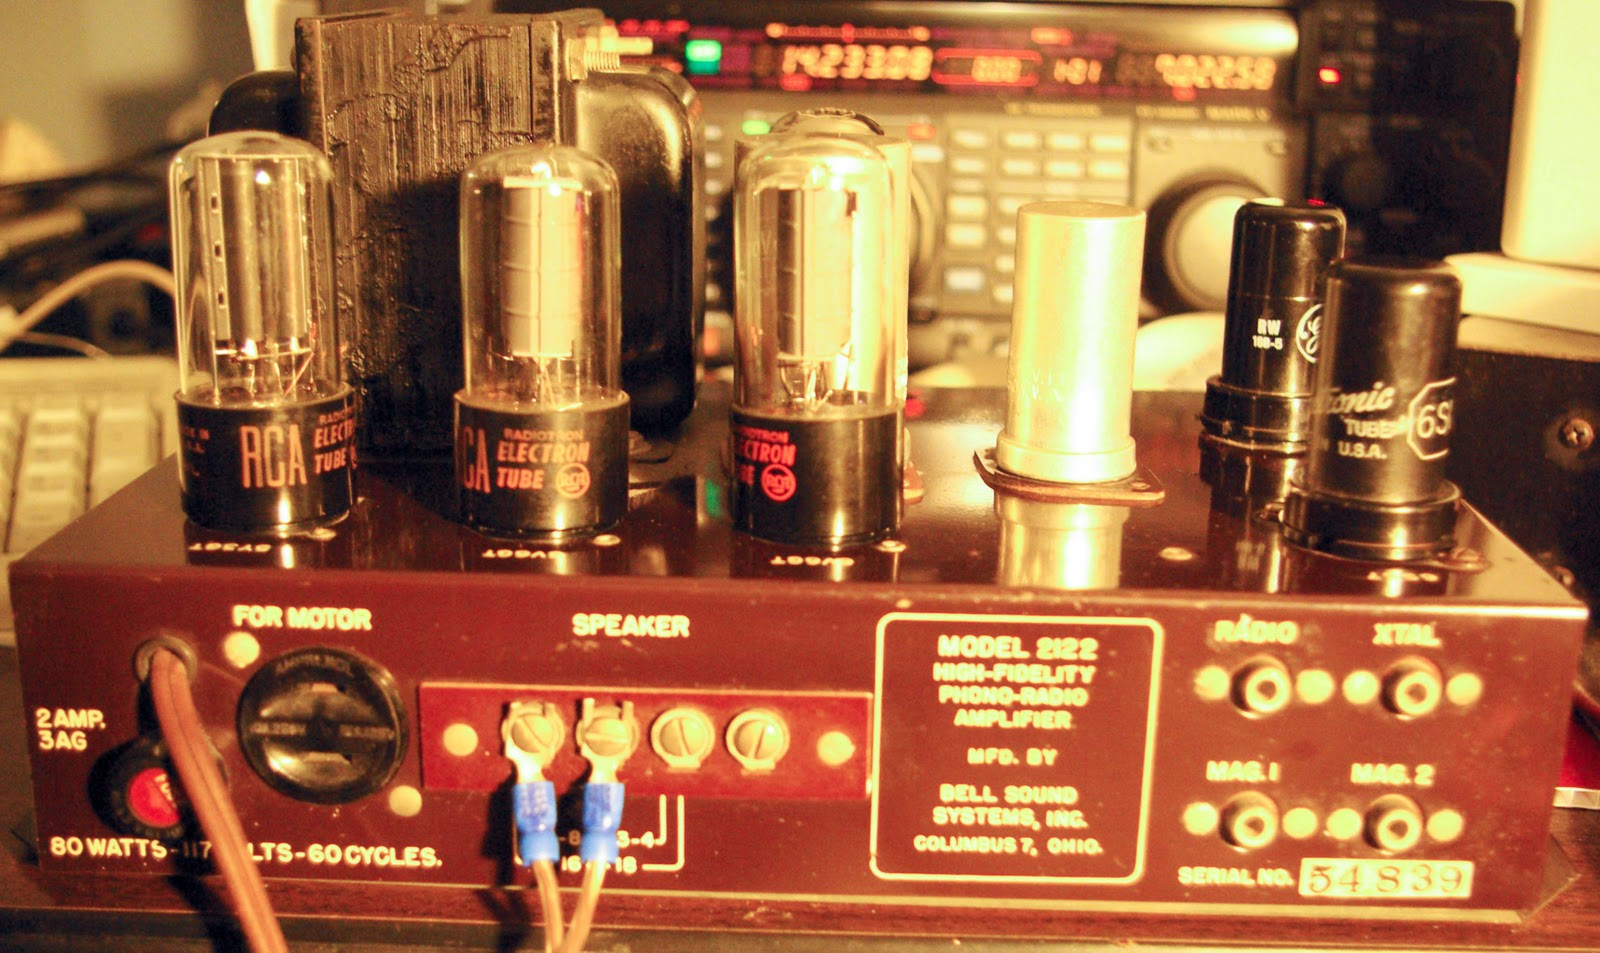 Wheels Wings And Radio Things Bell Classic 6v6 Tube Amp